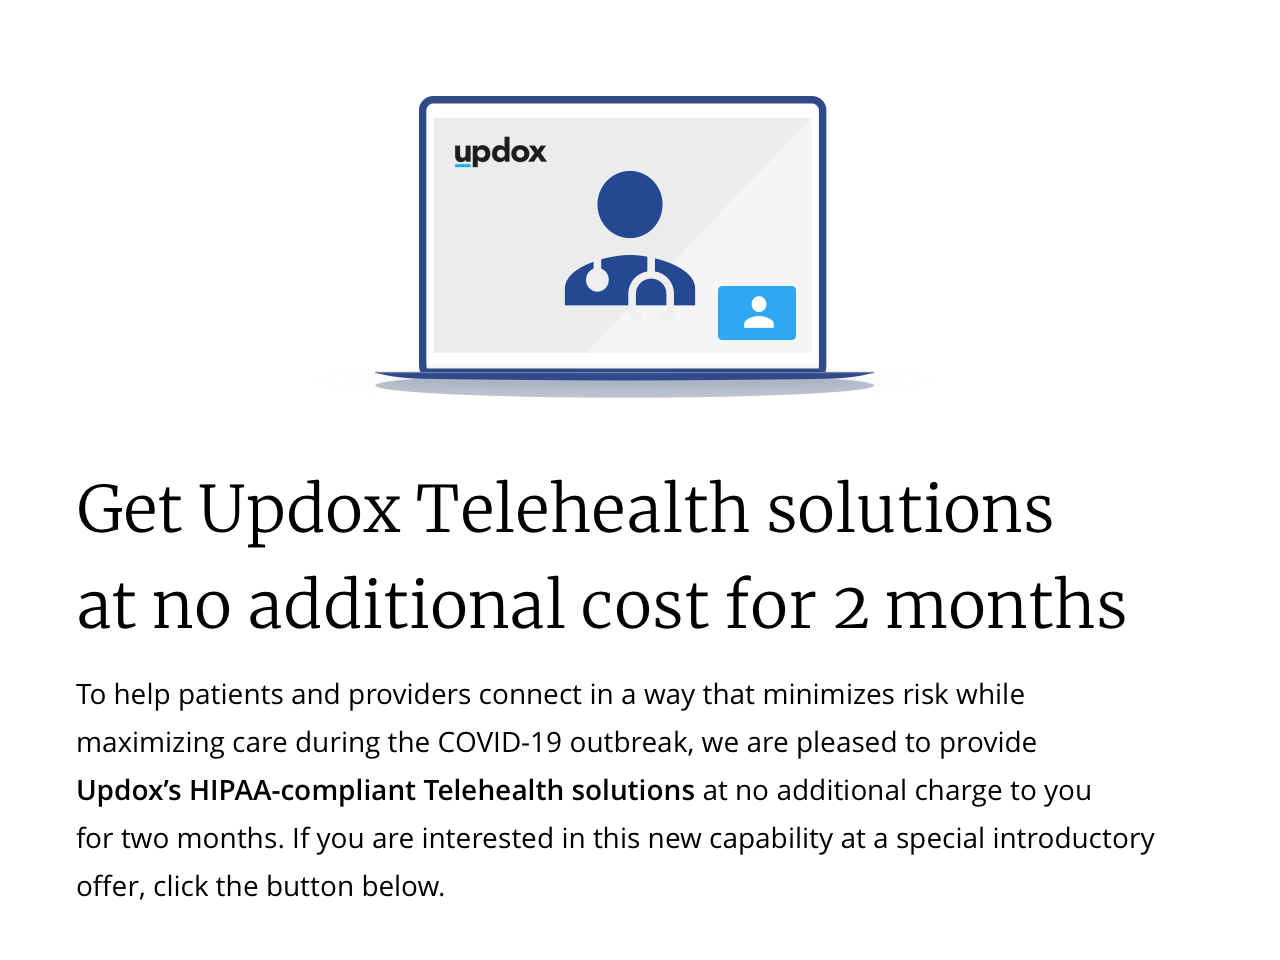 Updox Telehealth Solutions